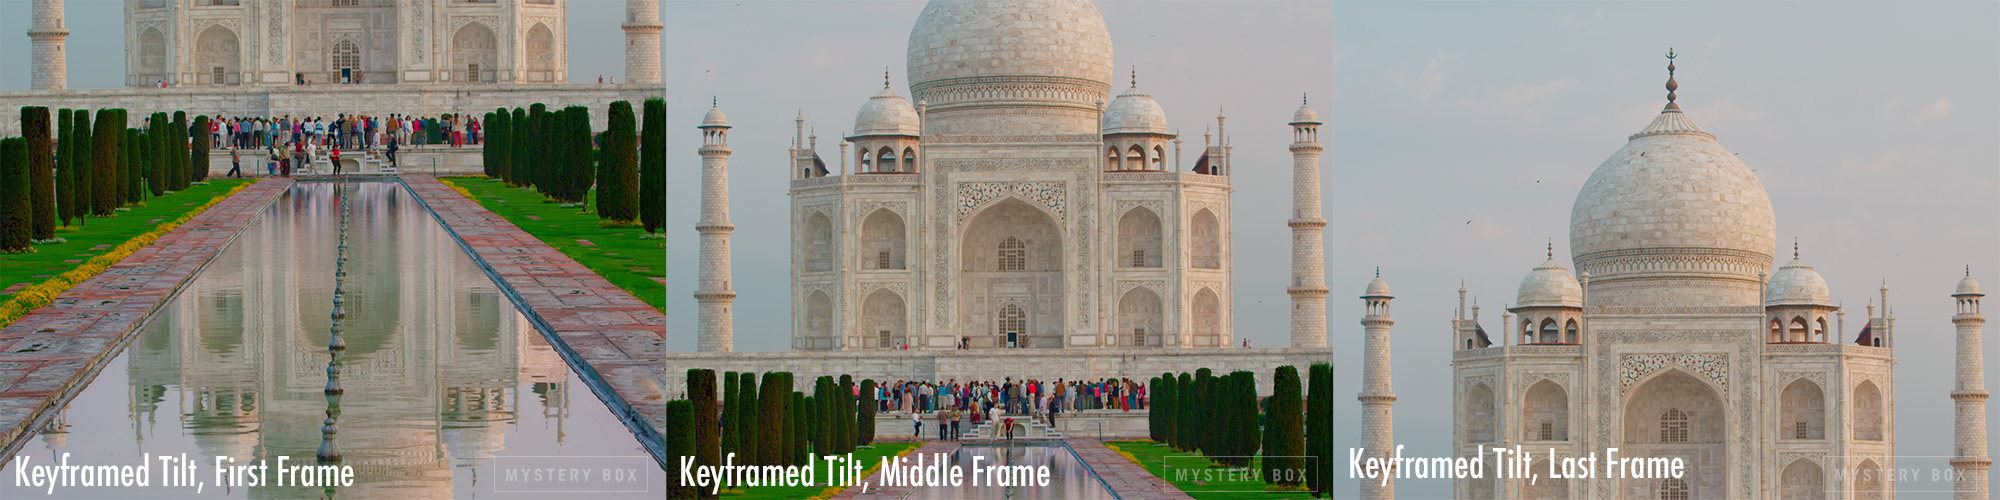 Tilt-up Shot of Taj Mahal where brightness keyframes were required to limit MaxFALL. In an ideal world, no keyframes would have been necessary and the final frame would have been much brighter (as shot) than the first.